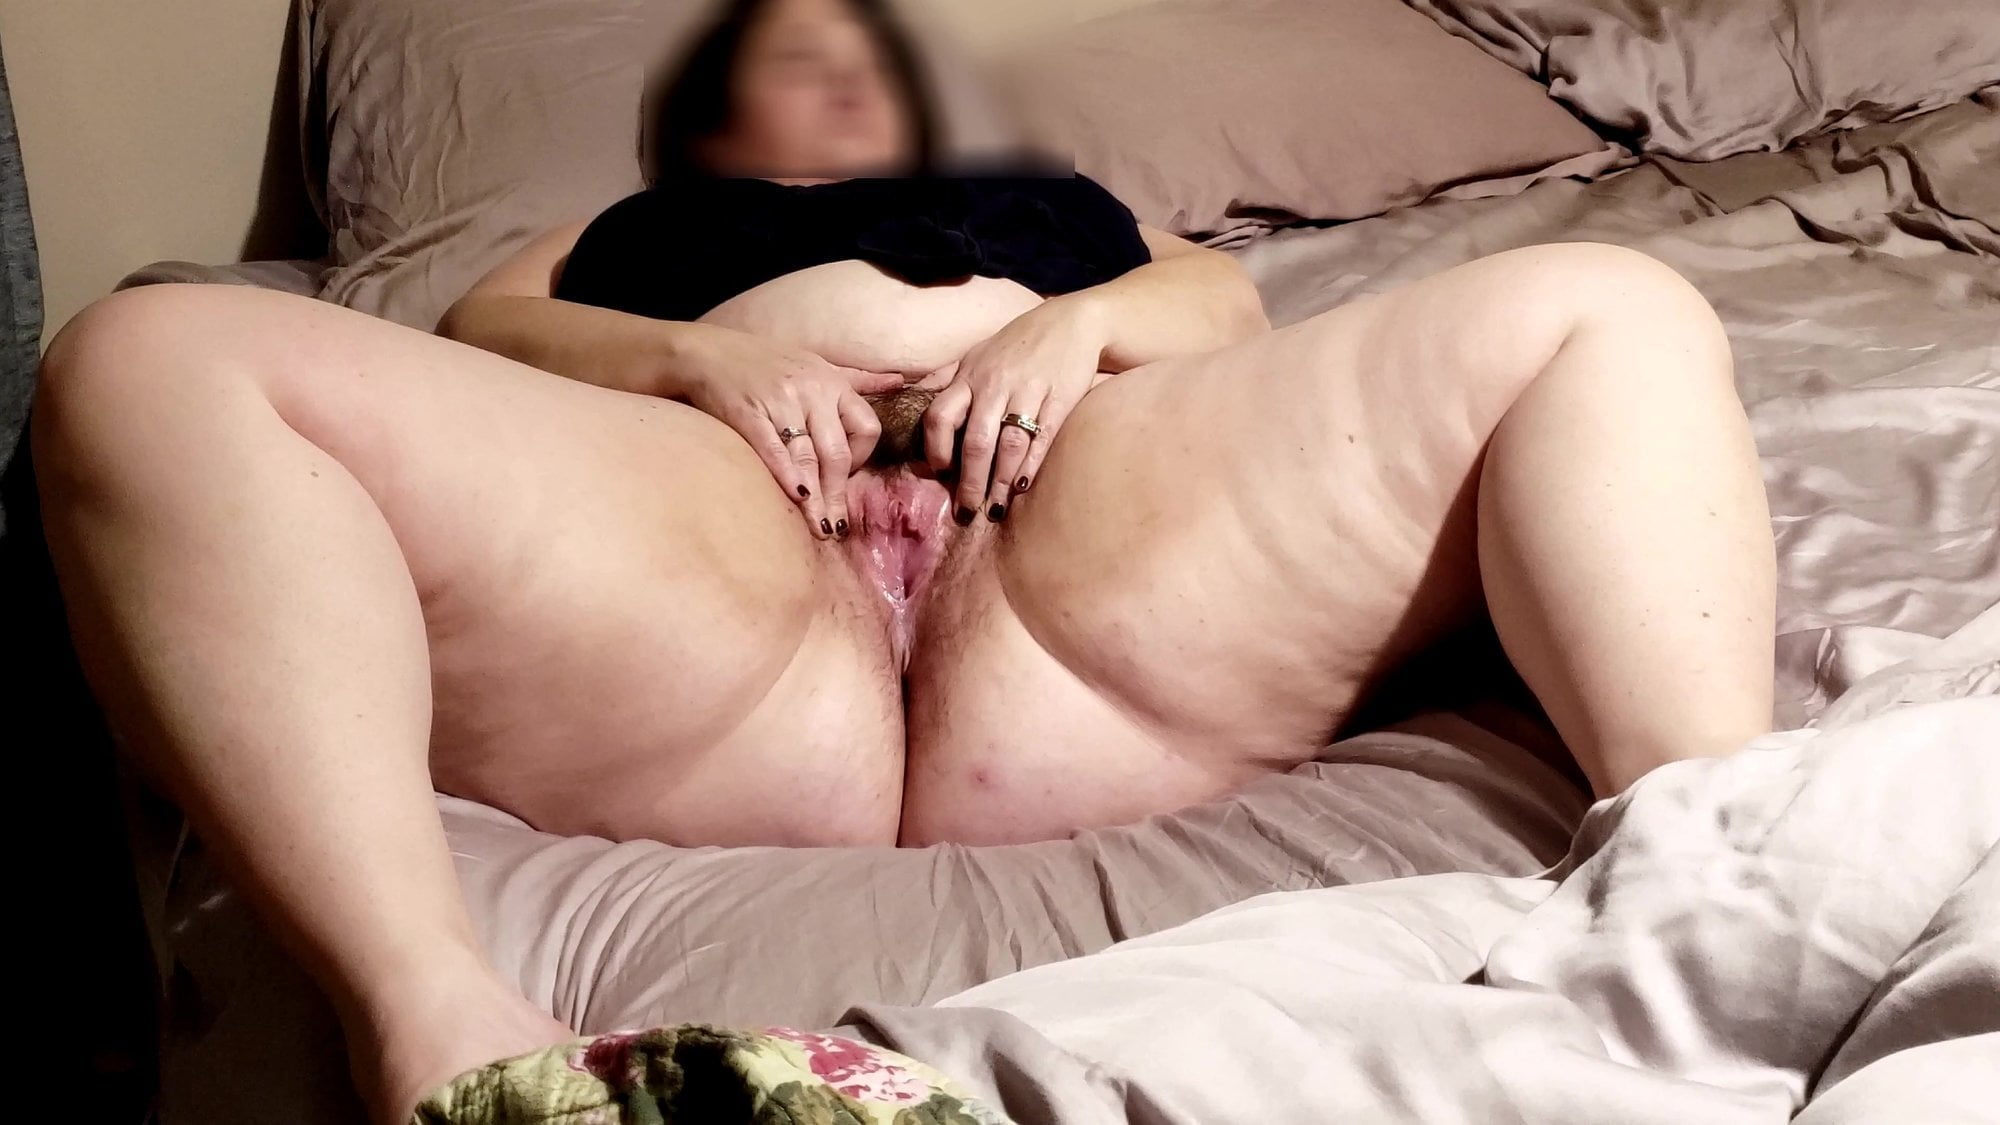 Puffy pussy pump clitiris big o contractions